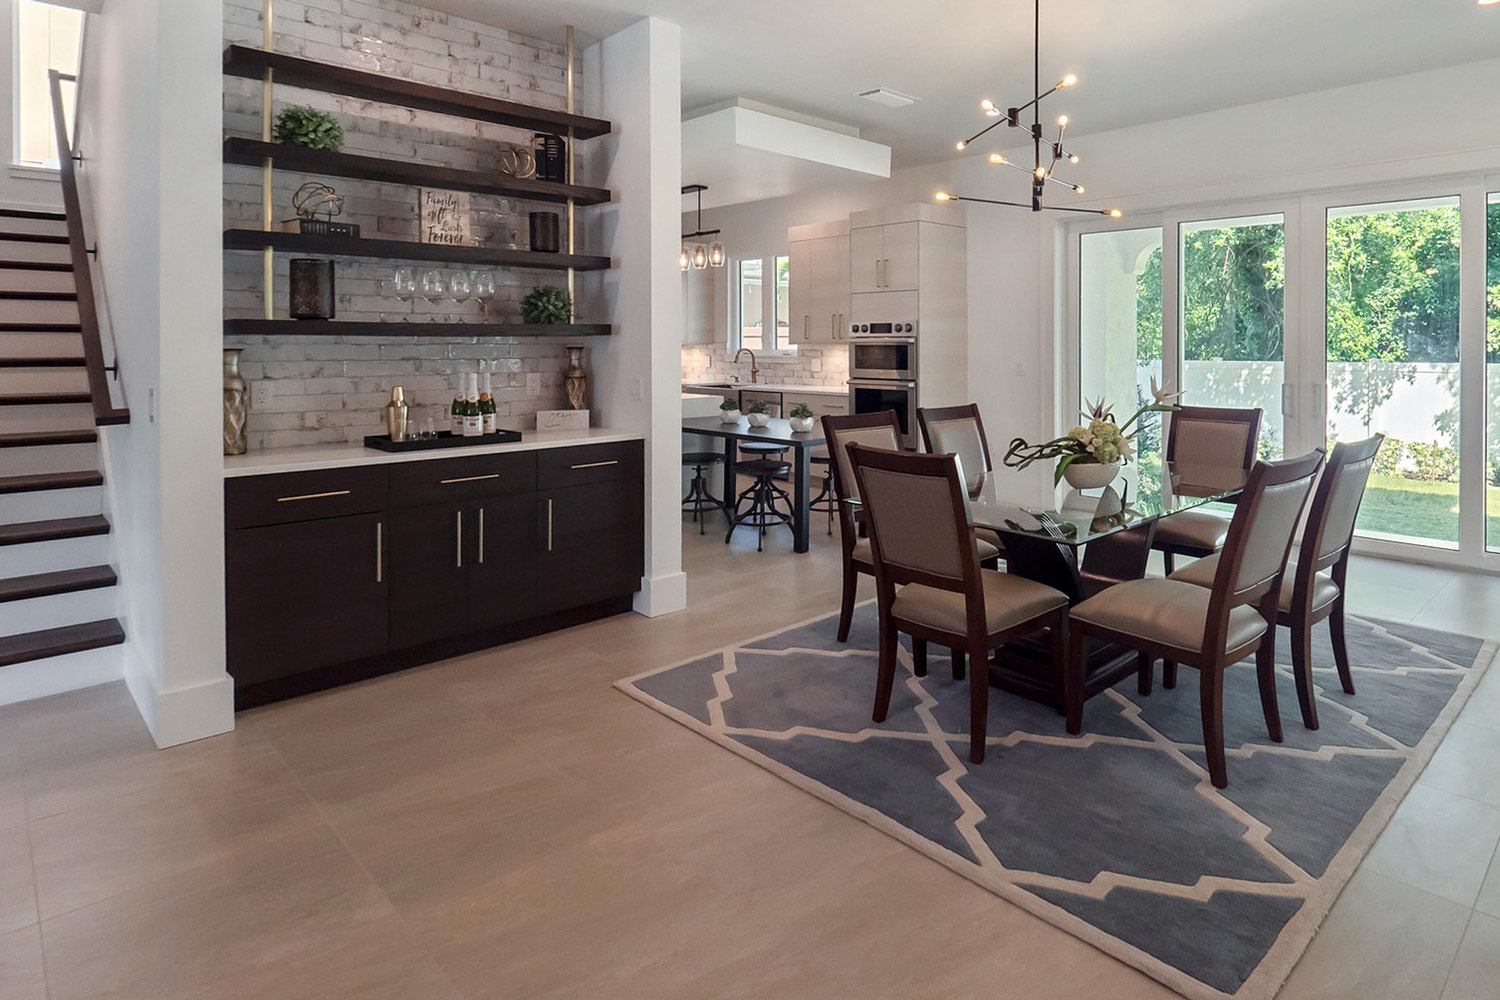 Staged Dining Area - Orlando Home Stagers